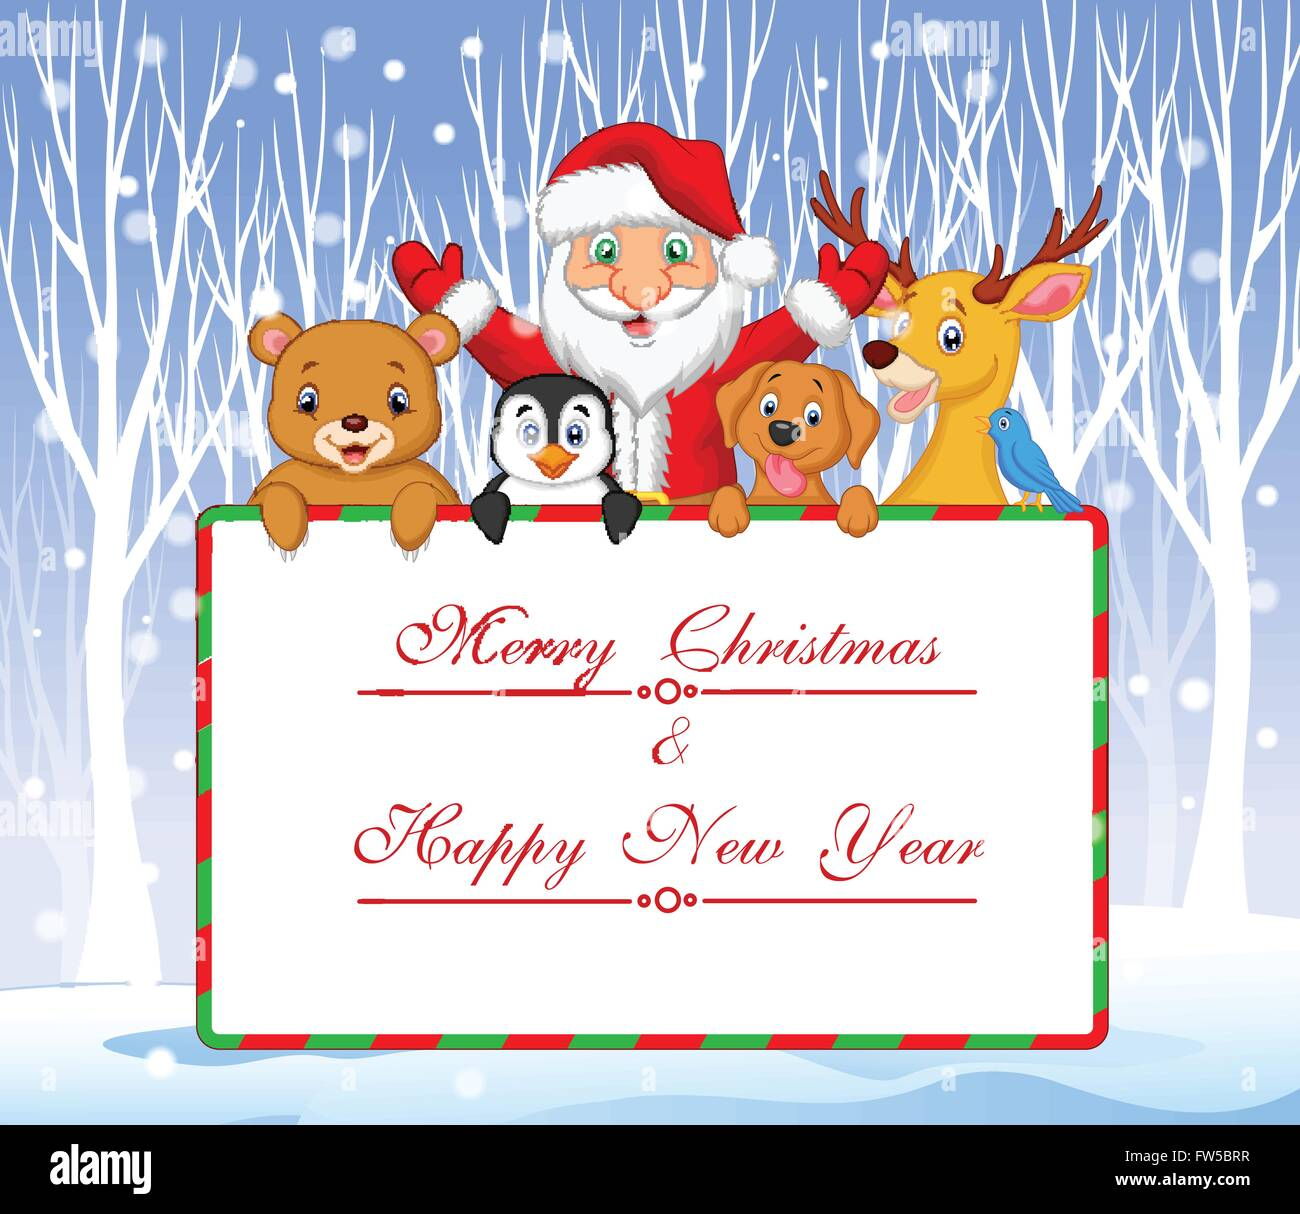 Cartoon Santa And Friend Holding Christmas Greeting With Winter